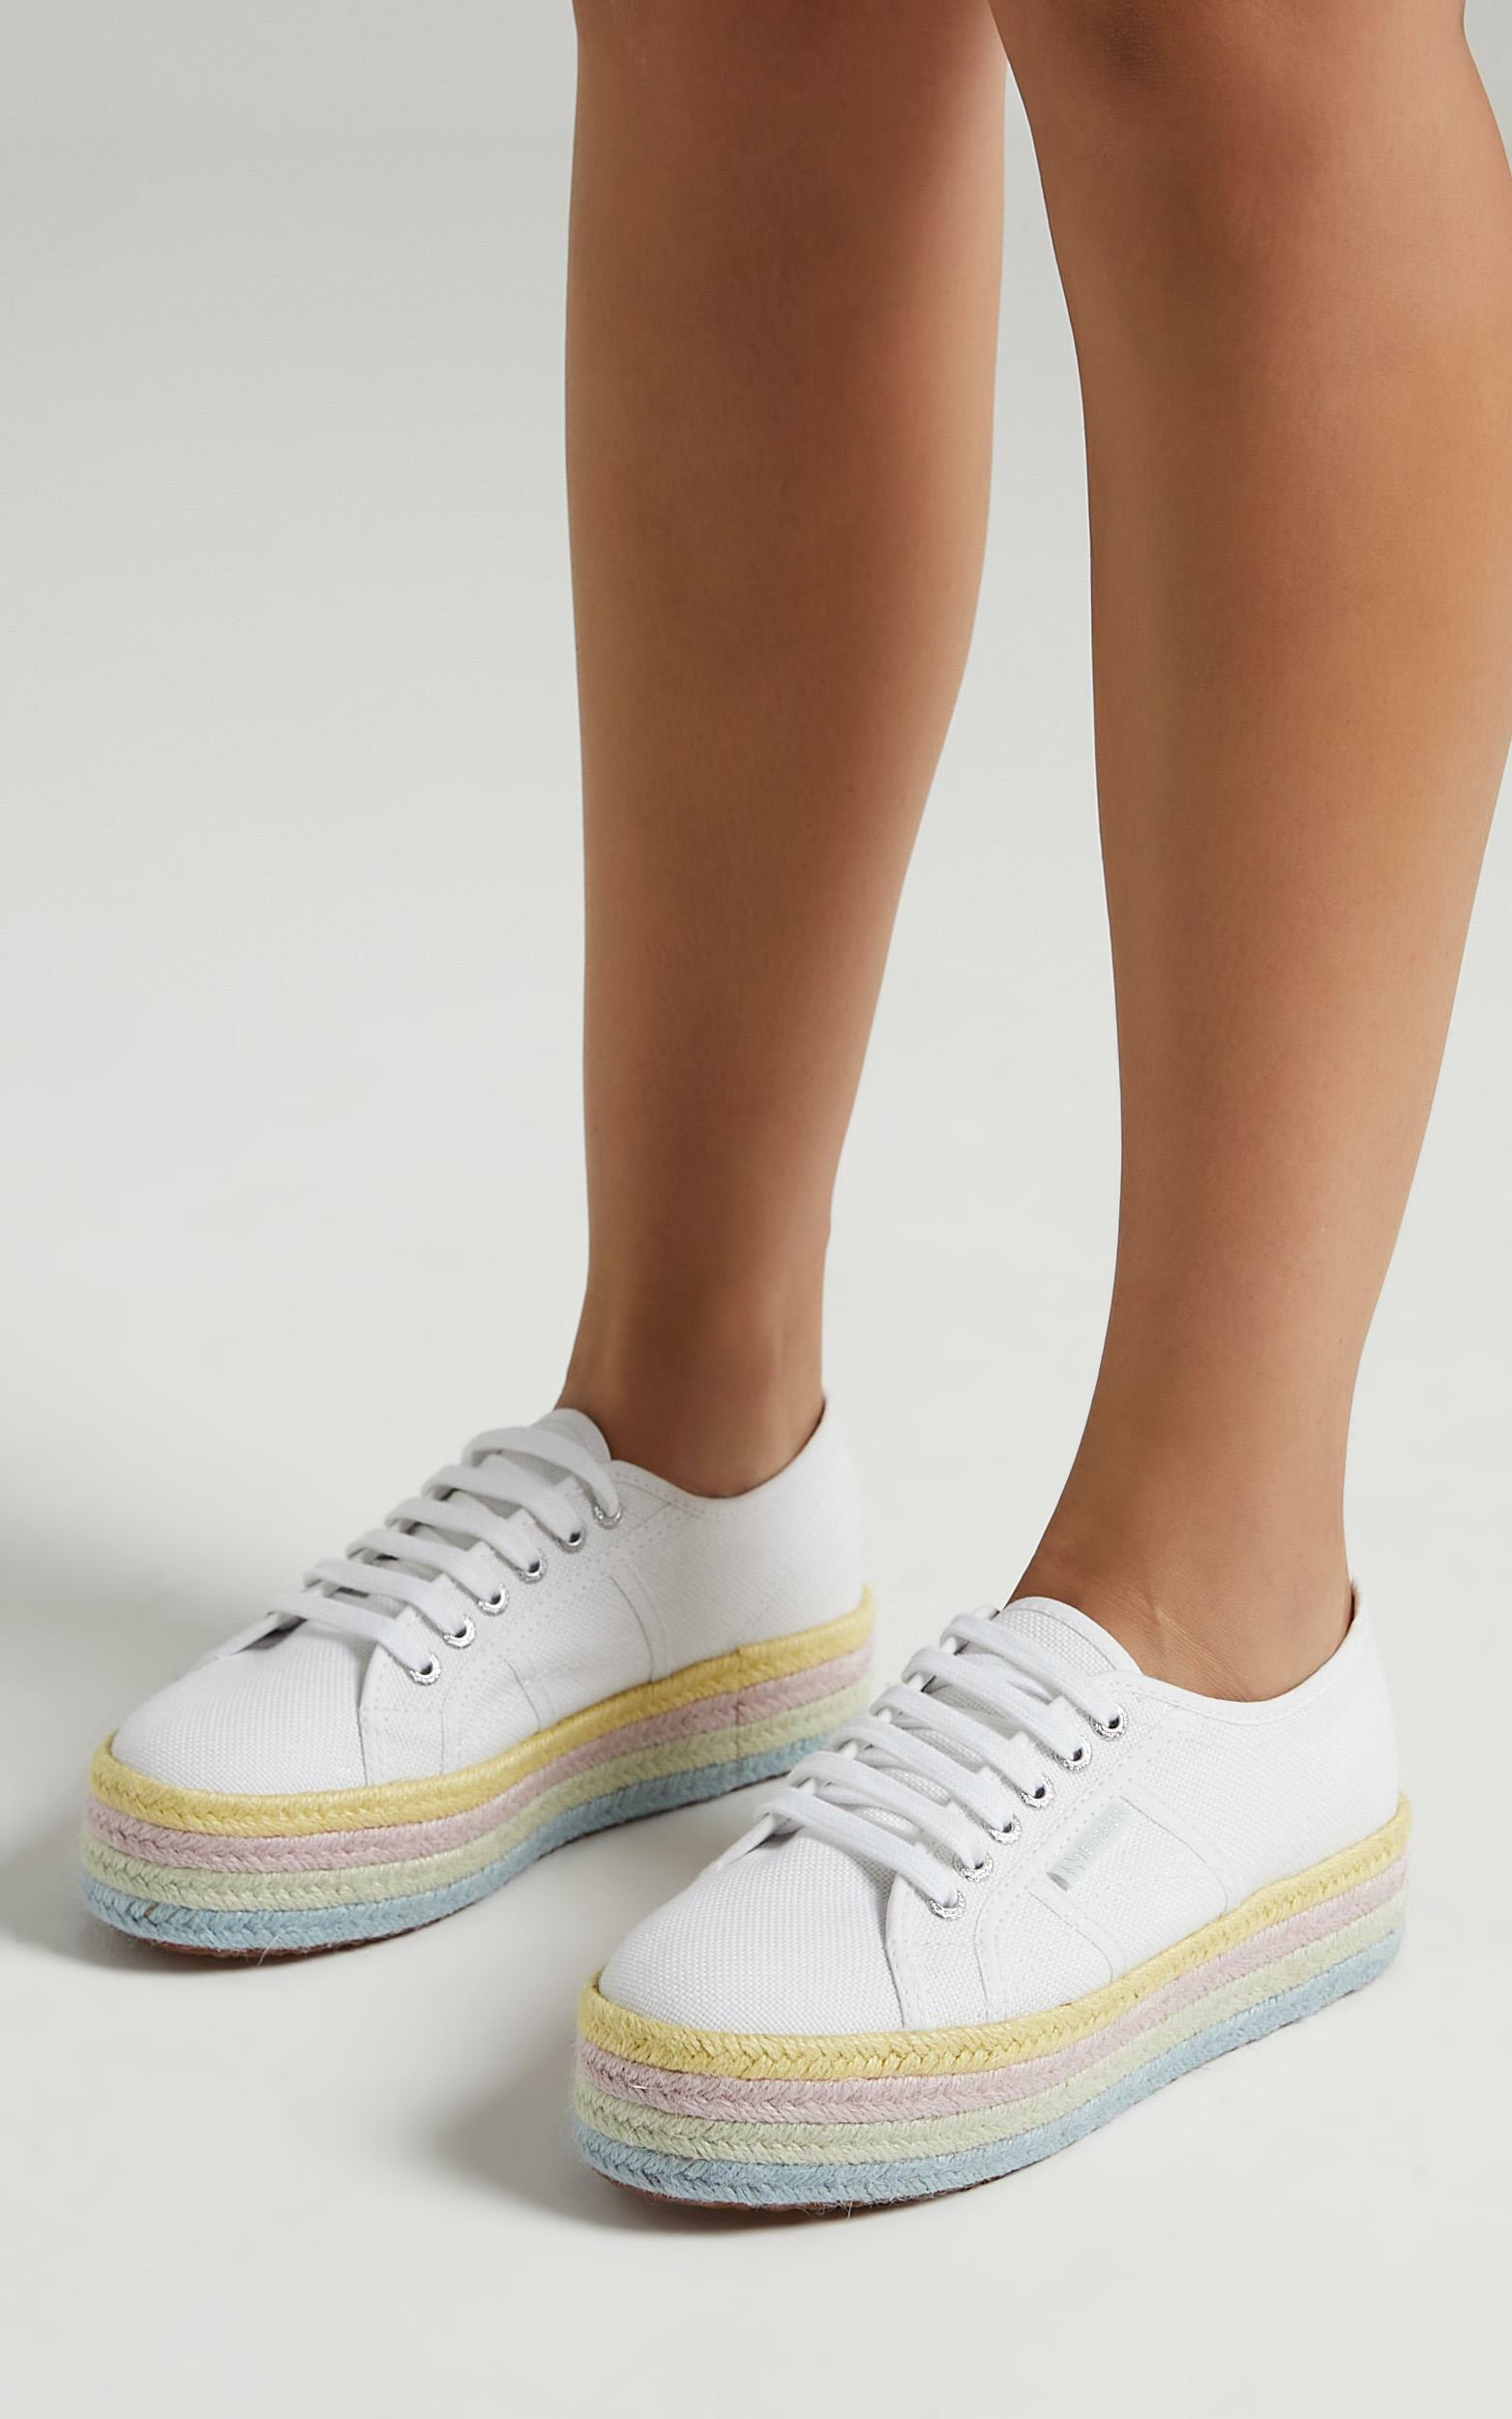 Superga - 2790 COT Color Rope in white - lemonade pale lilac - 5, PRP3, hi-res image number null